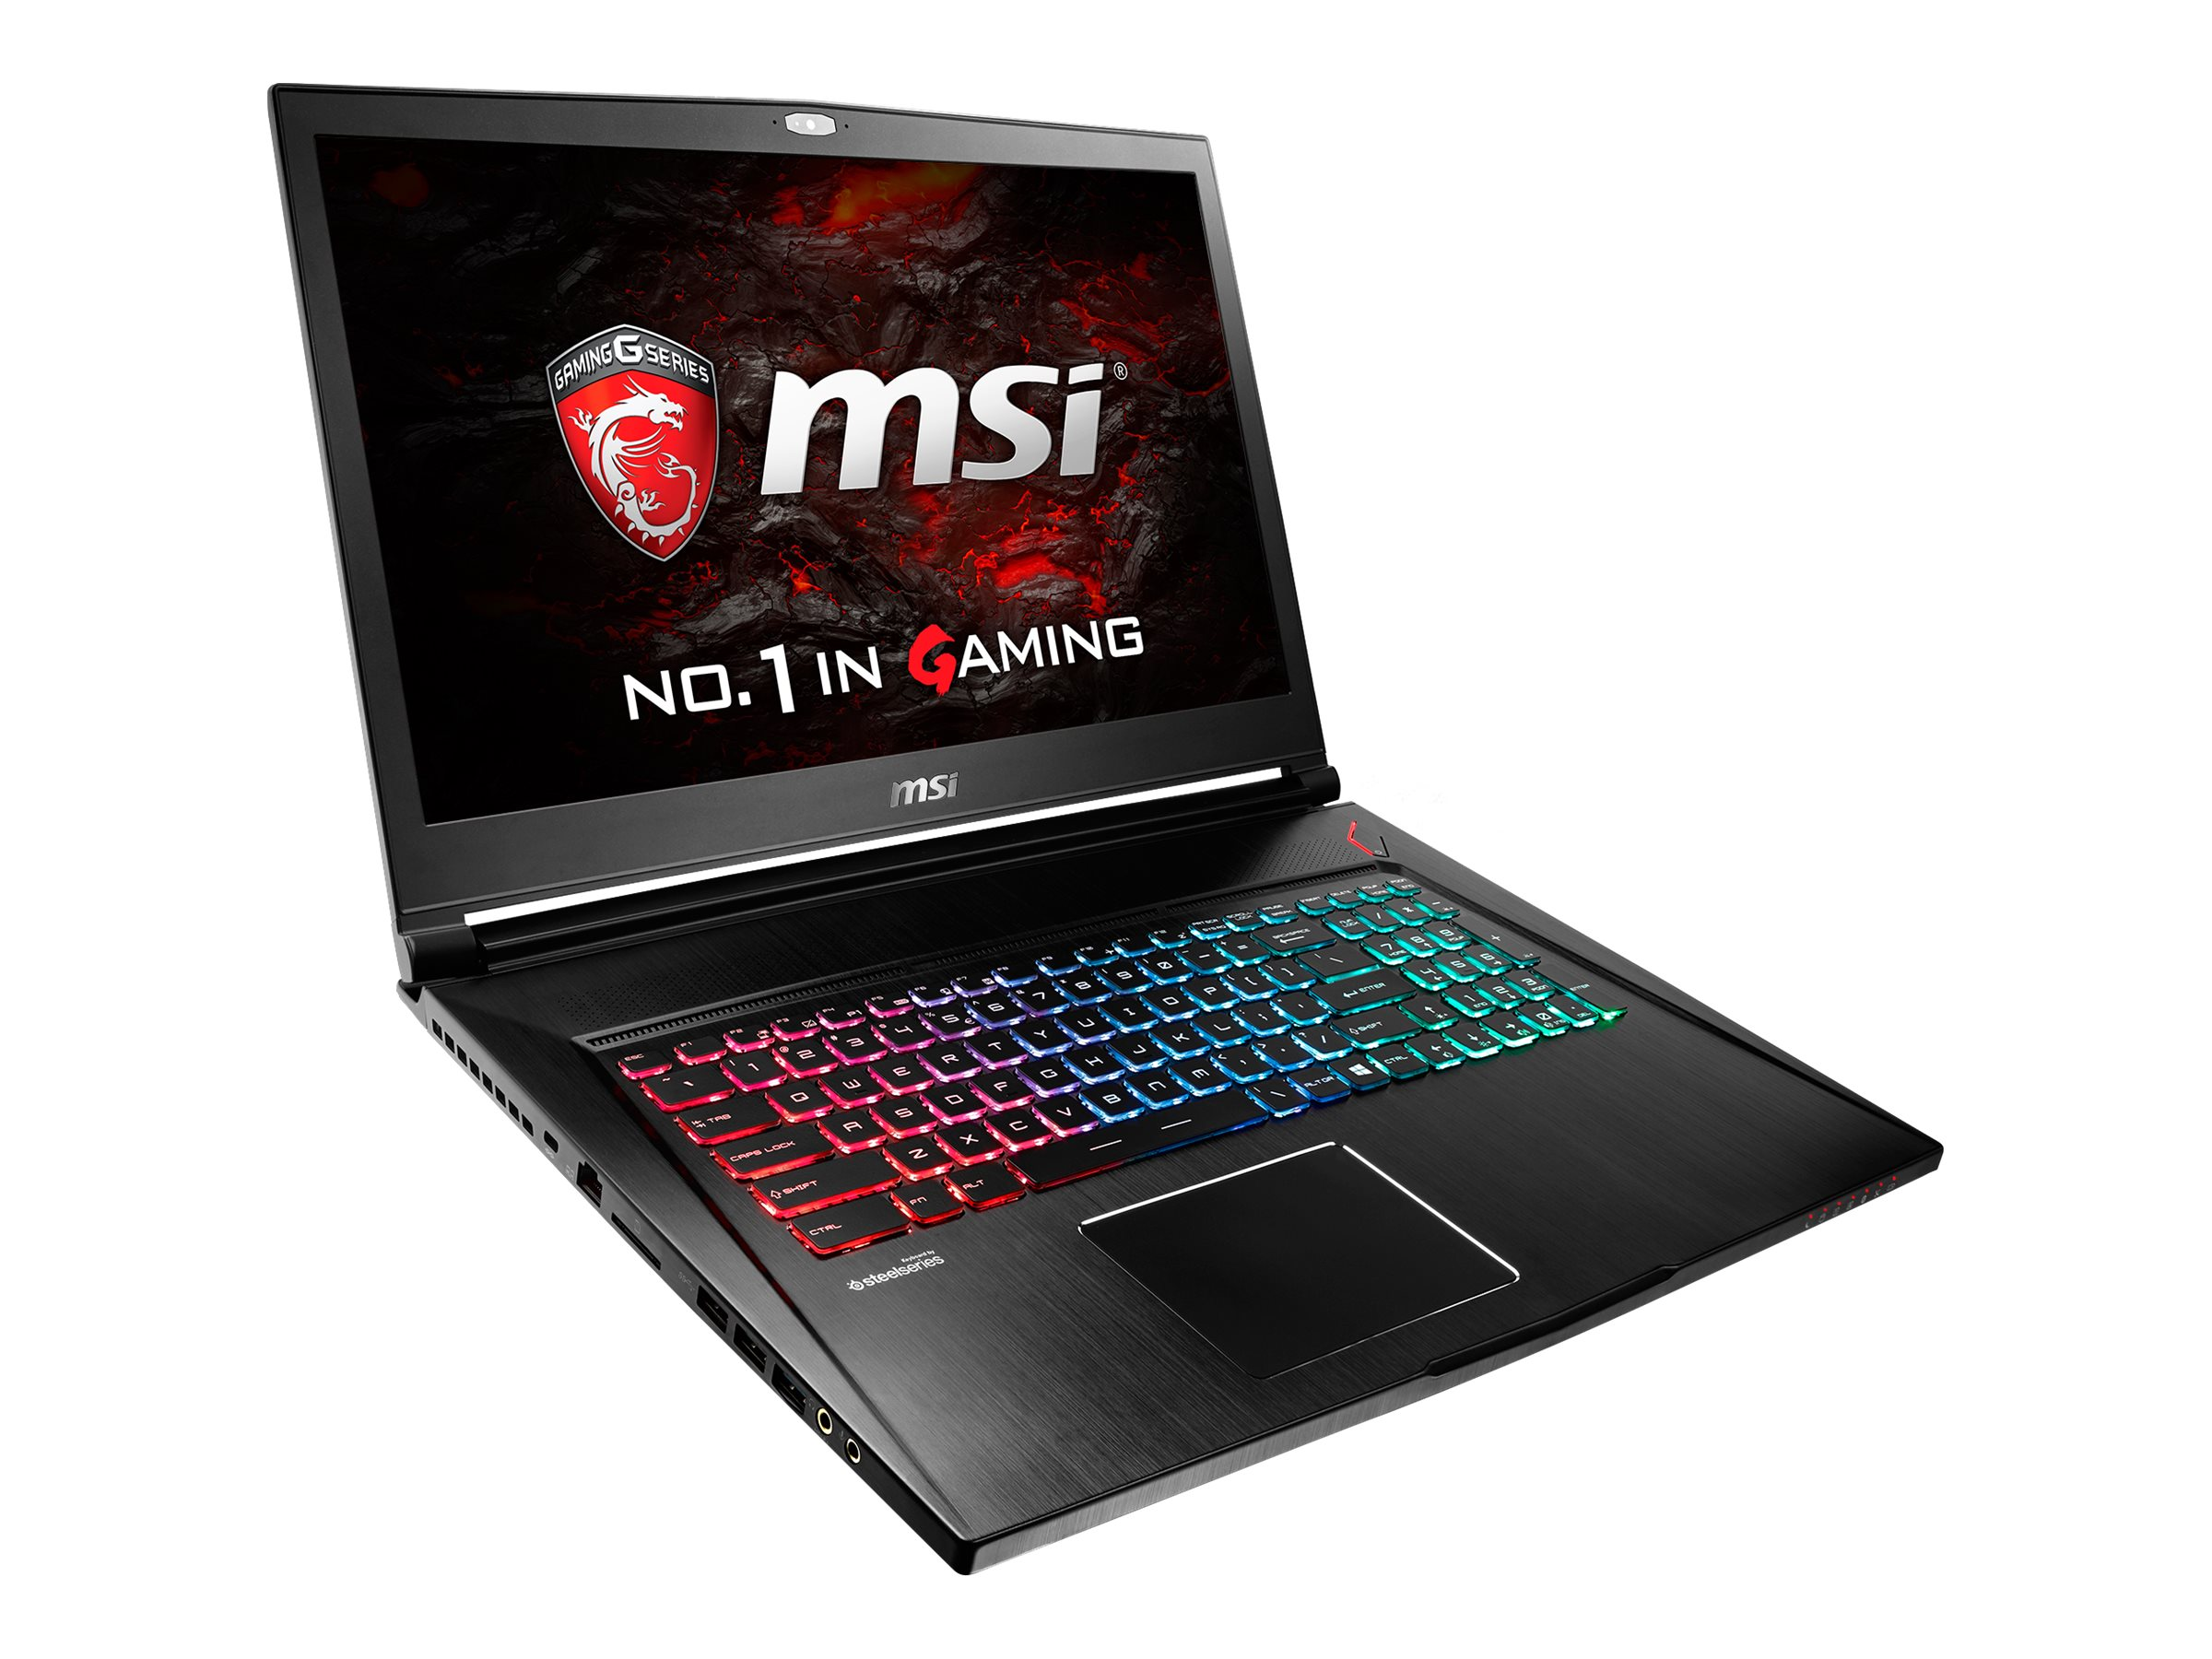 MSI GS73VR Stealth Pro-025 Notebook PC, GS73VR STEALTH PRO-025